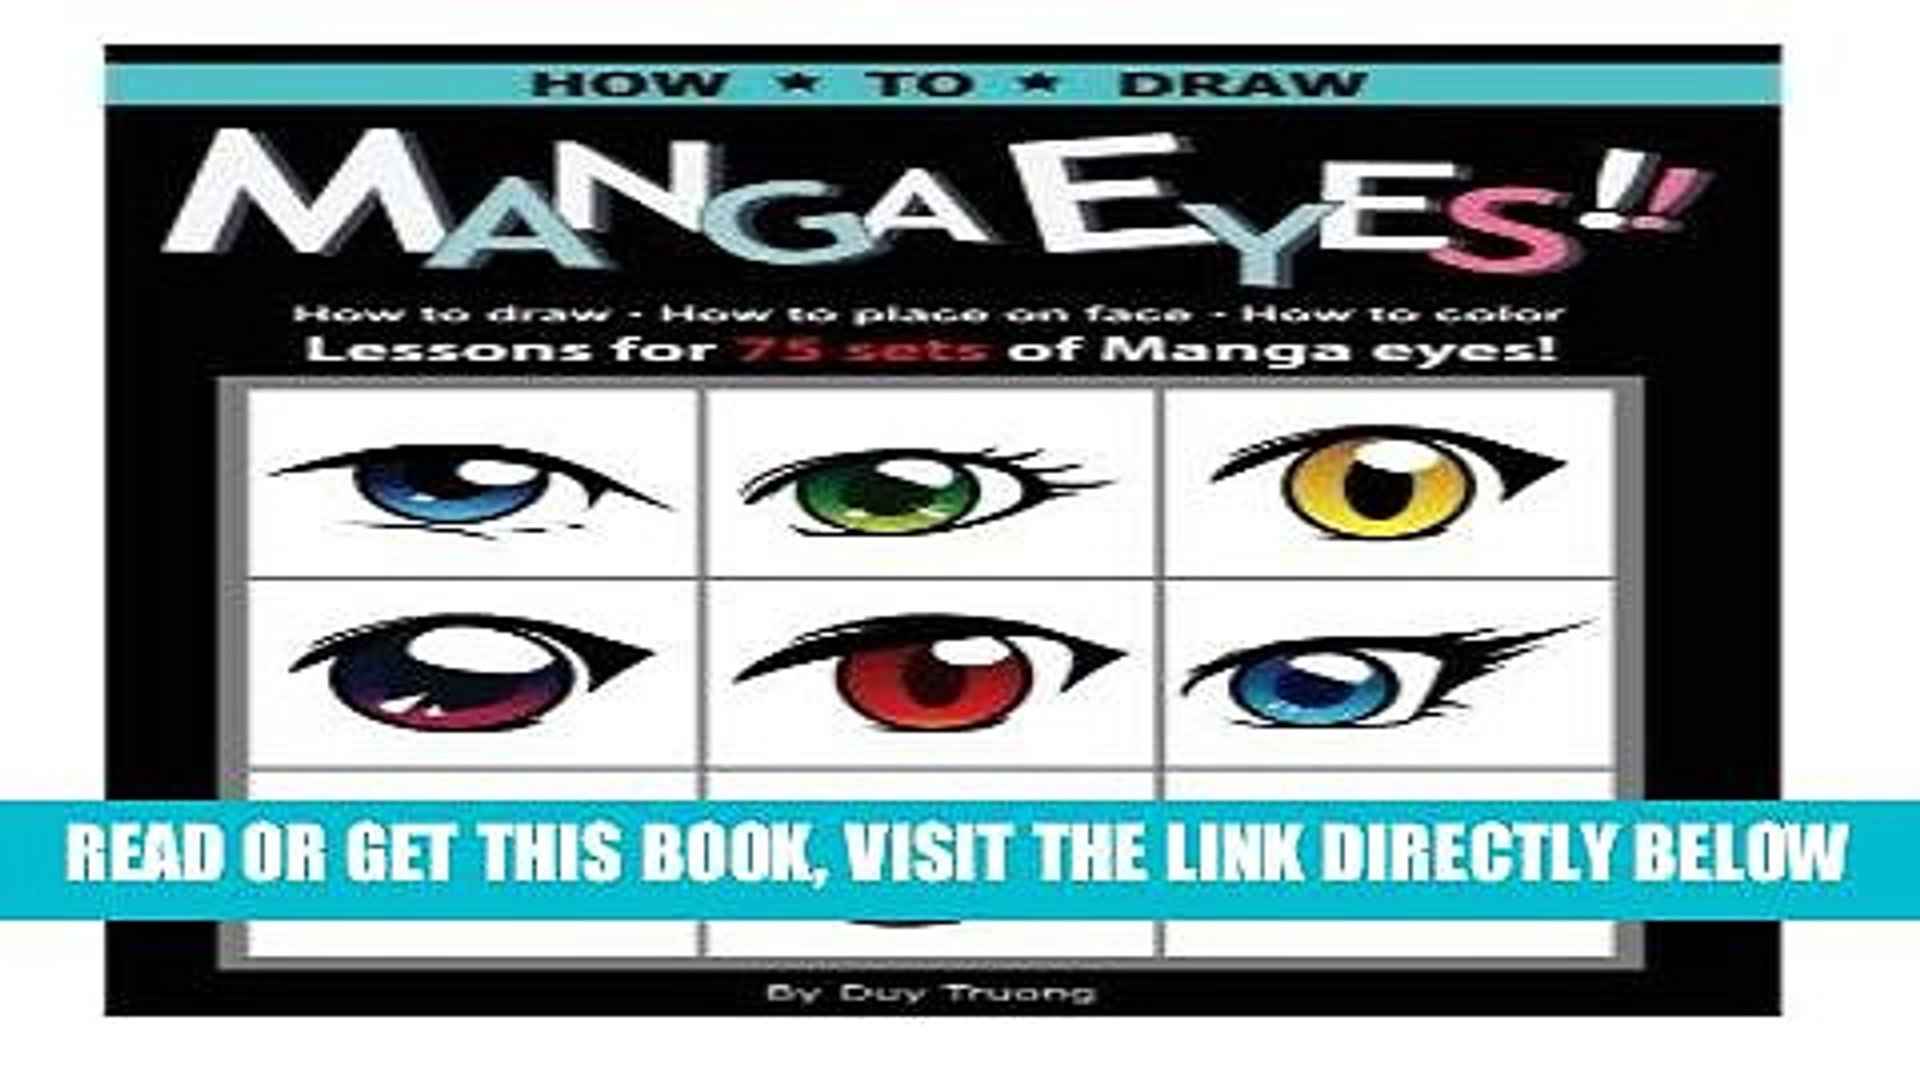 [READ] EBOOK How to draw Manga eyes!! How to Draw- How to Place on Face-How to Color Lessons for